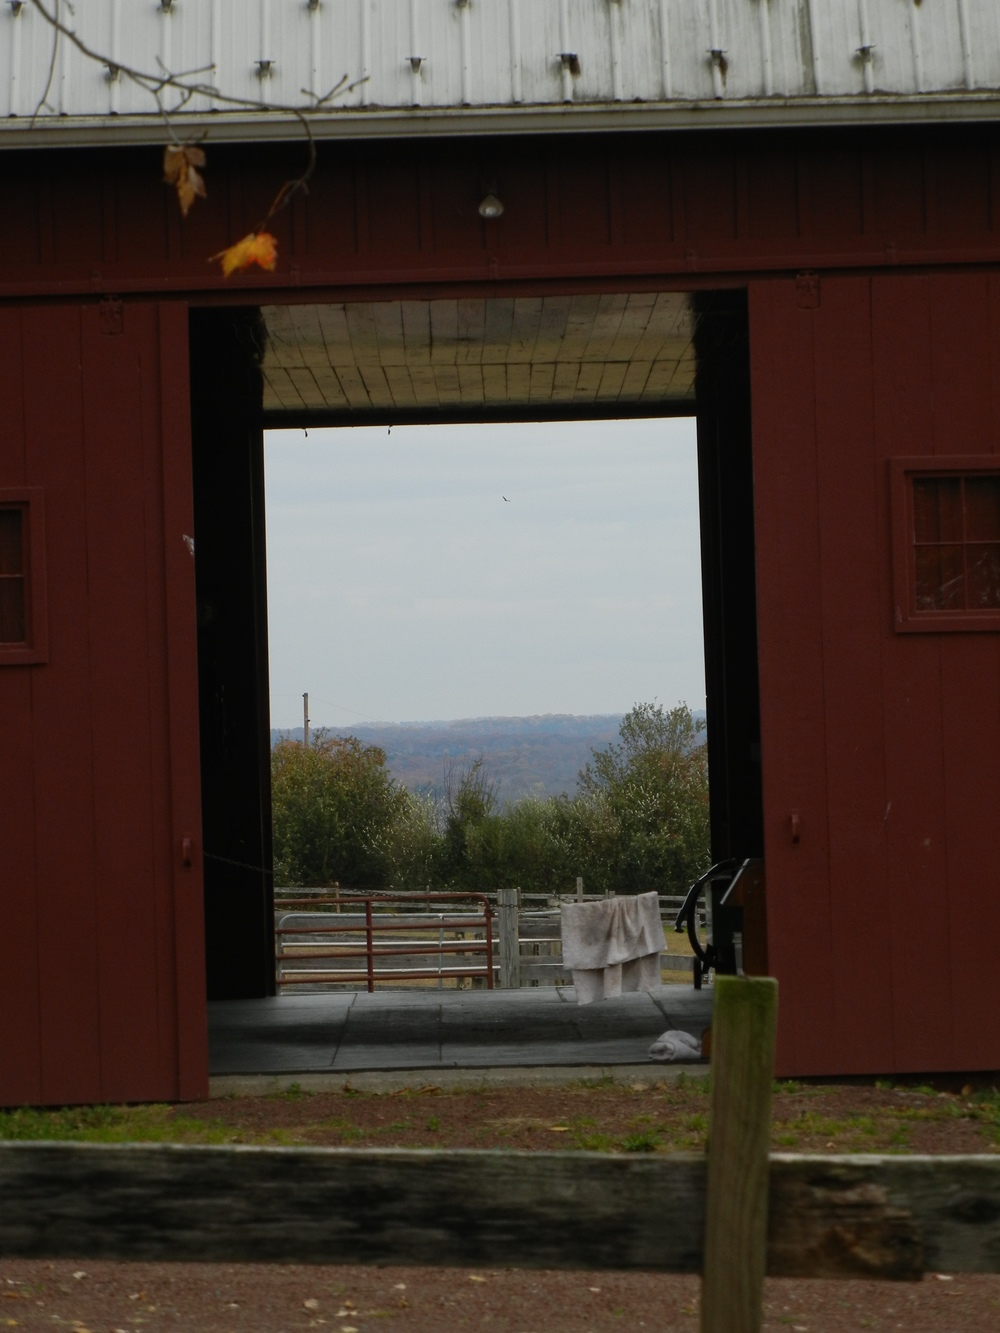 The view of New Jersey hills through the barn door of a farm atop Tinicum Church Road / Chestnut Ridge Road.